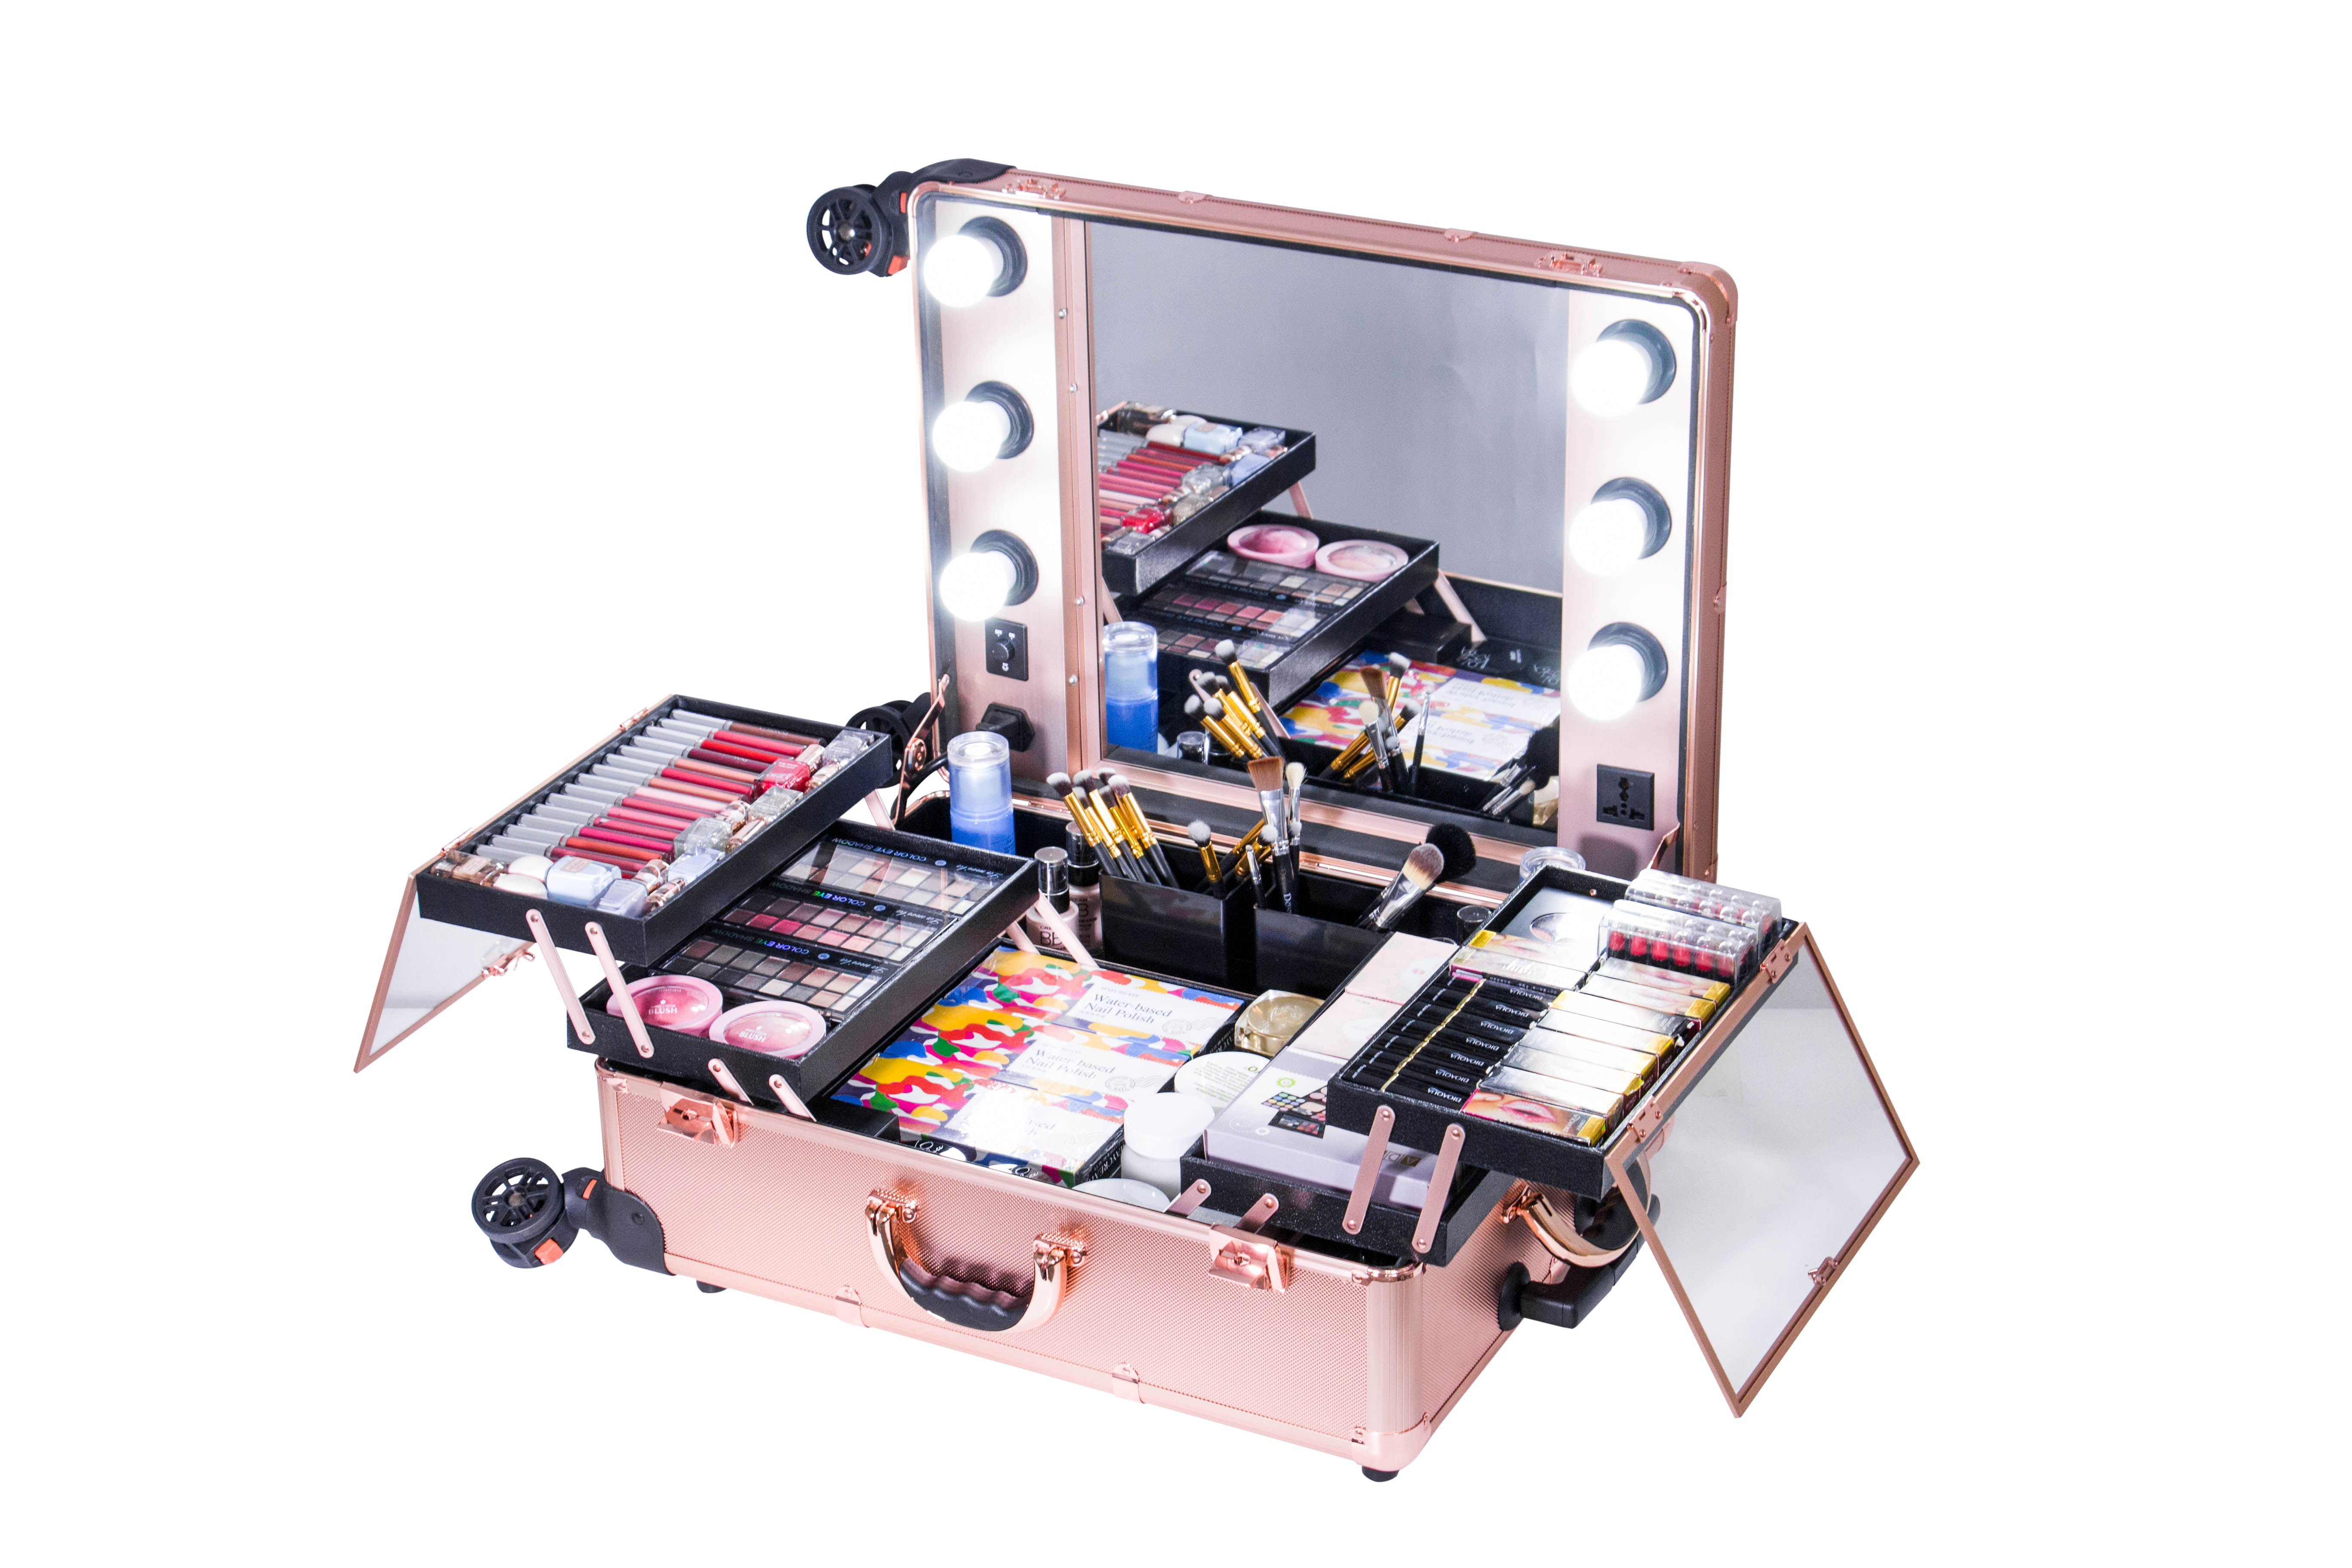 Best-Selling-Makeup-case-with-Lights-Wedding